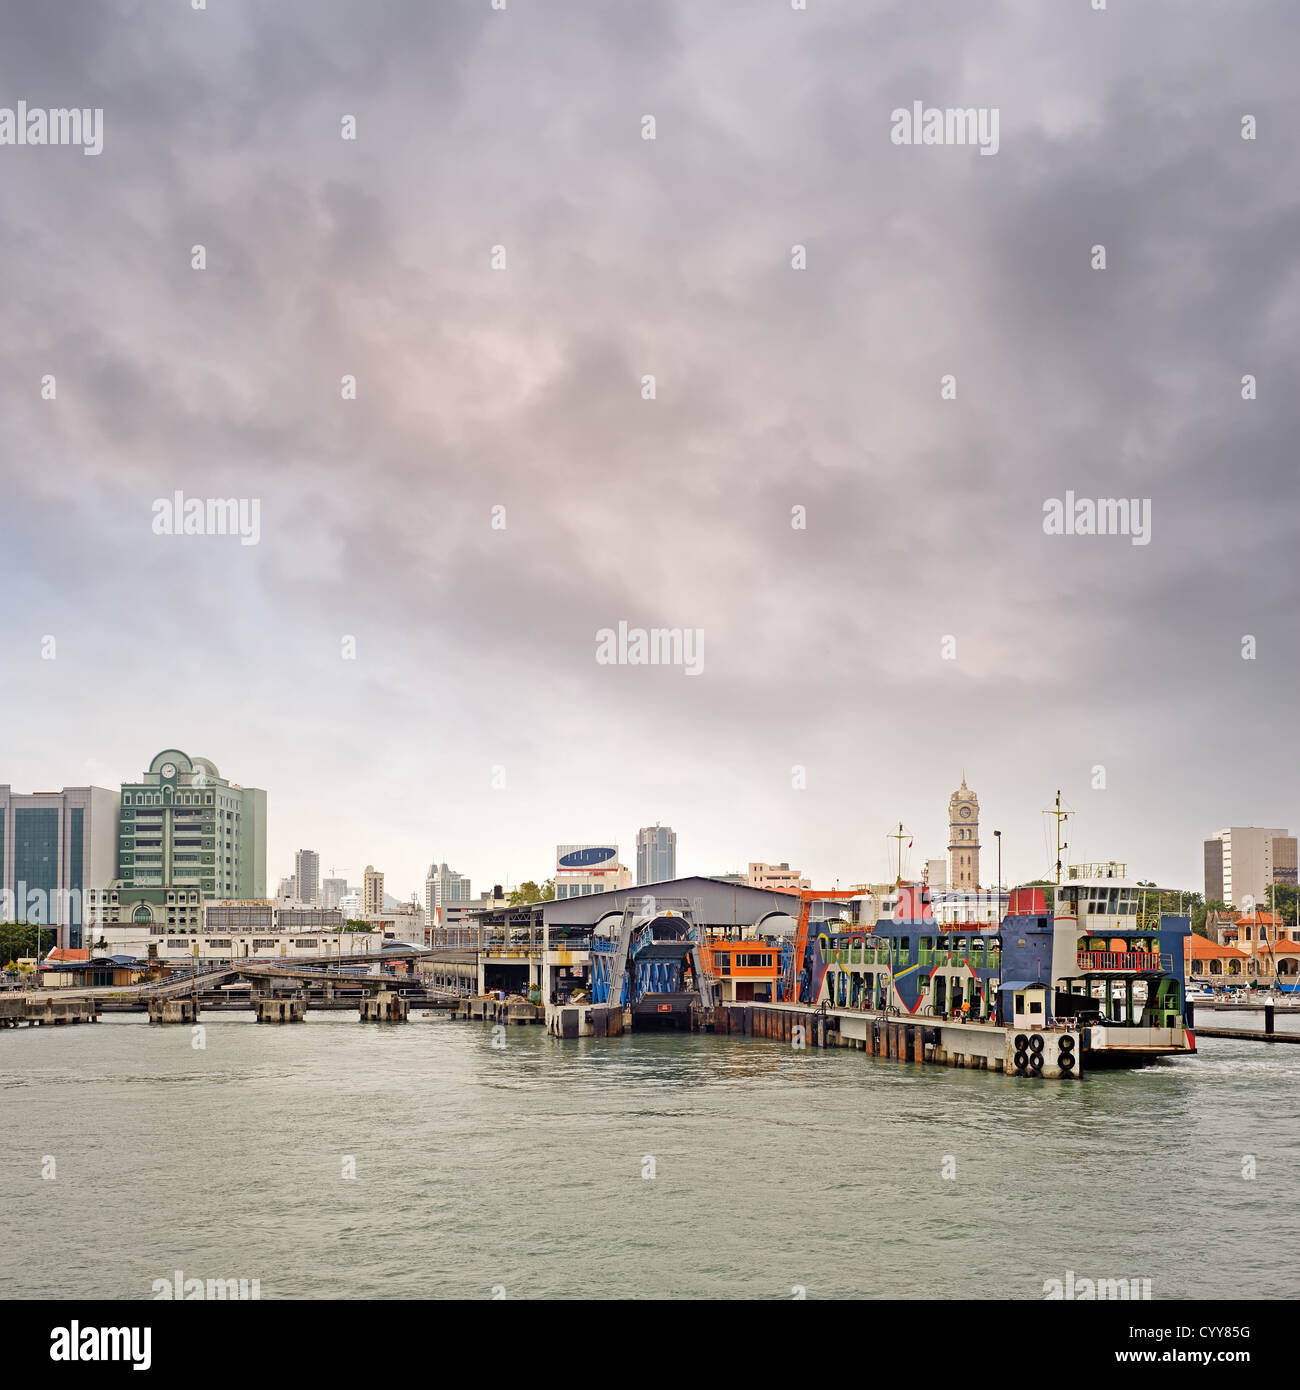 Thriving port and maritime transport in modern city in Penang, Malaysia, Asia. - Stock Image